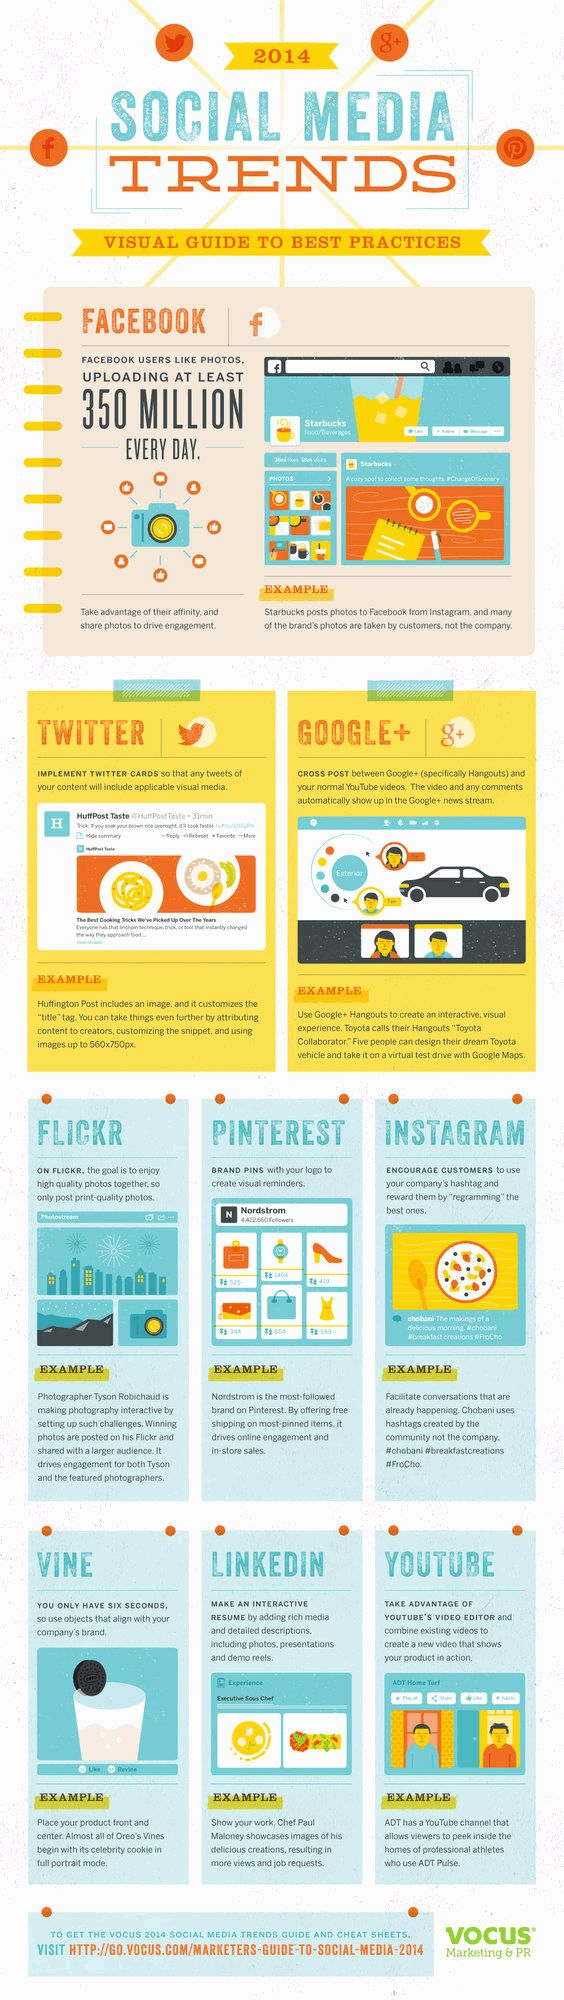 Social Media #Marketing Tips and Tricks for Facebook, Twitter, Google+, Instagram, Pinterest, Vine, Flickr, LinkedIn and YouTube!